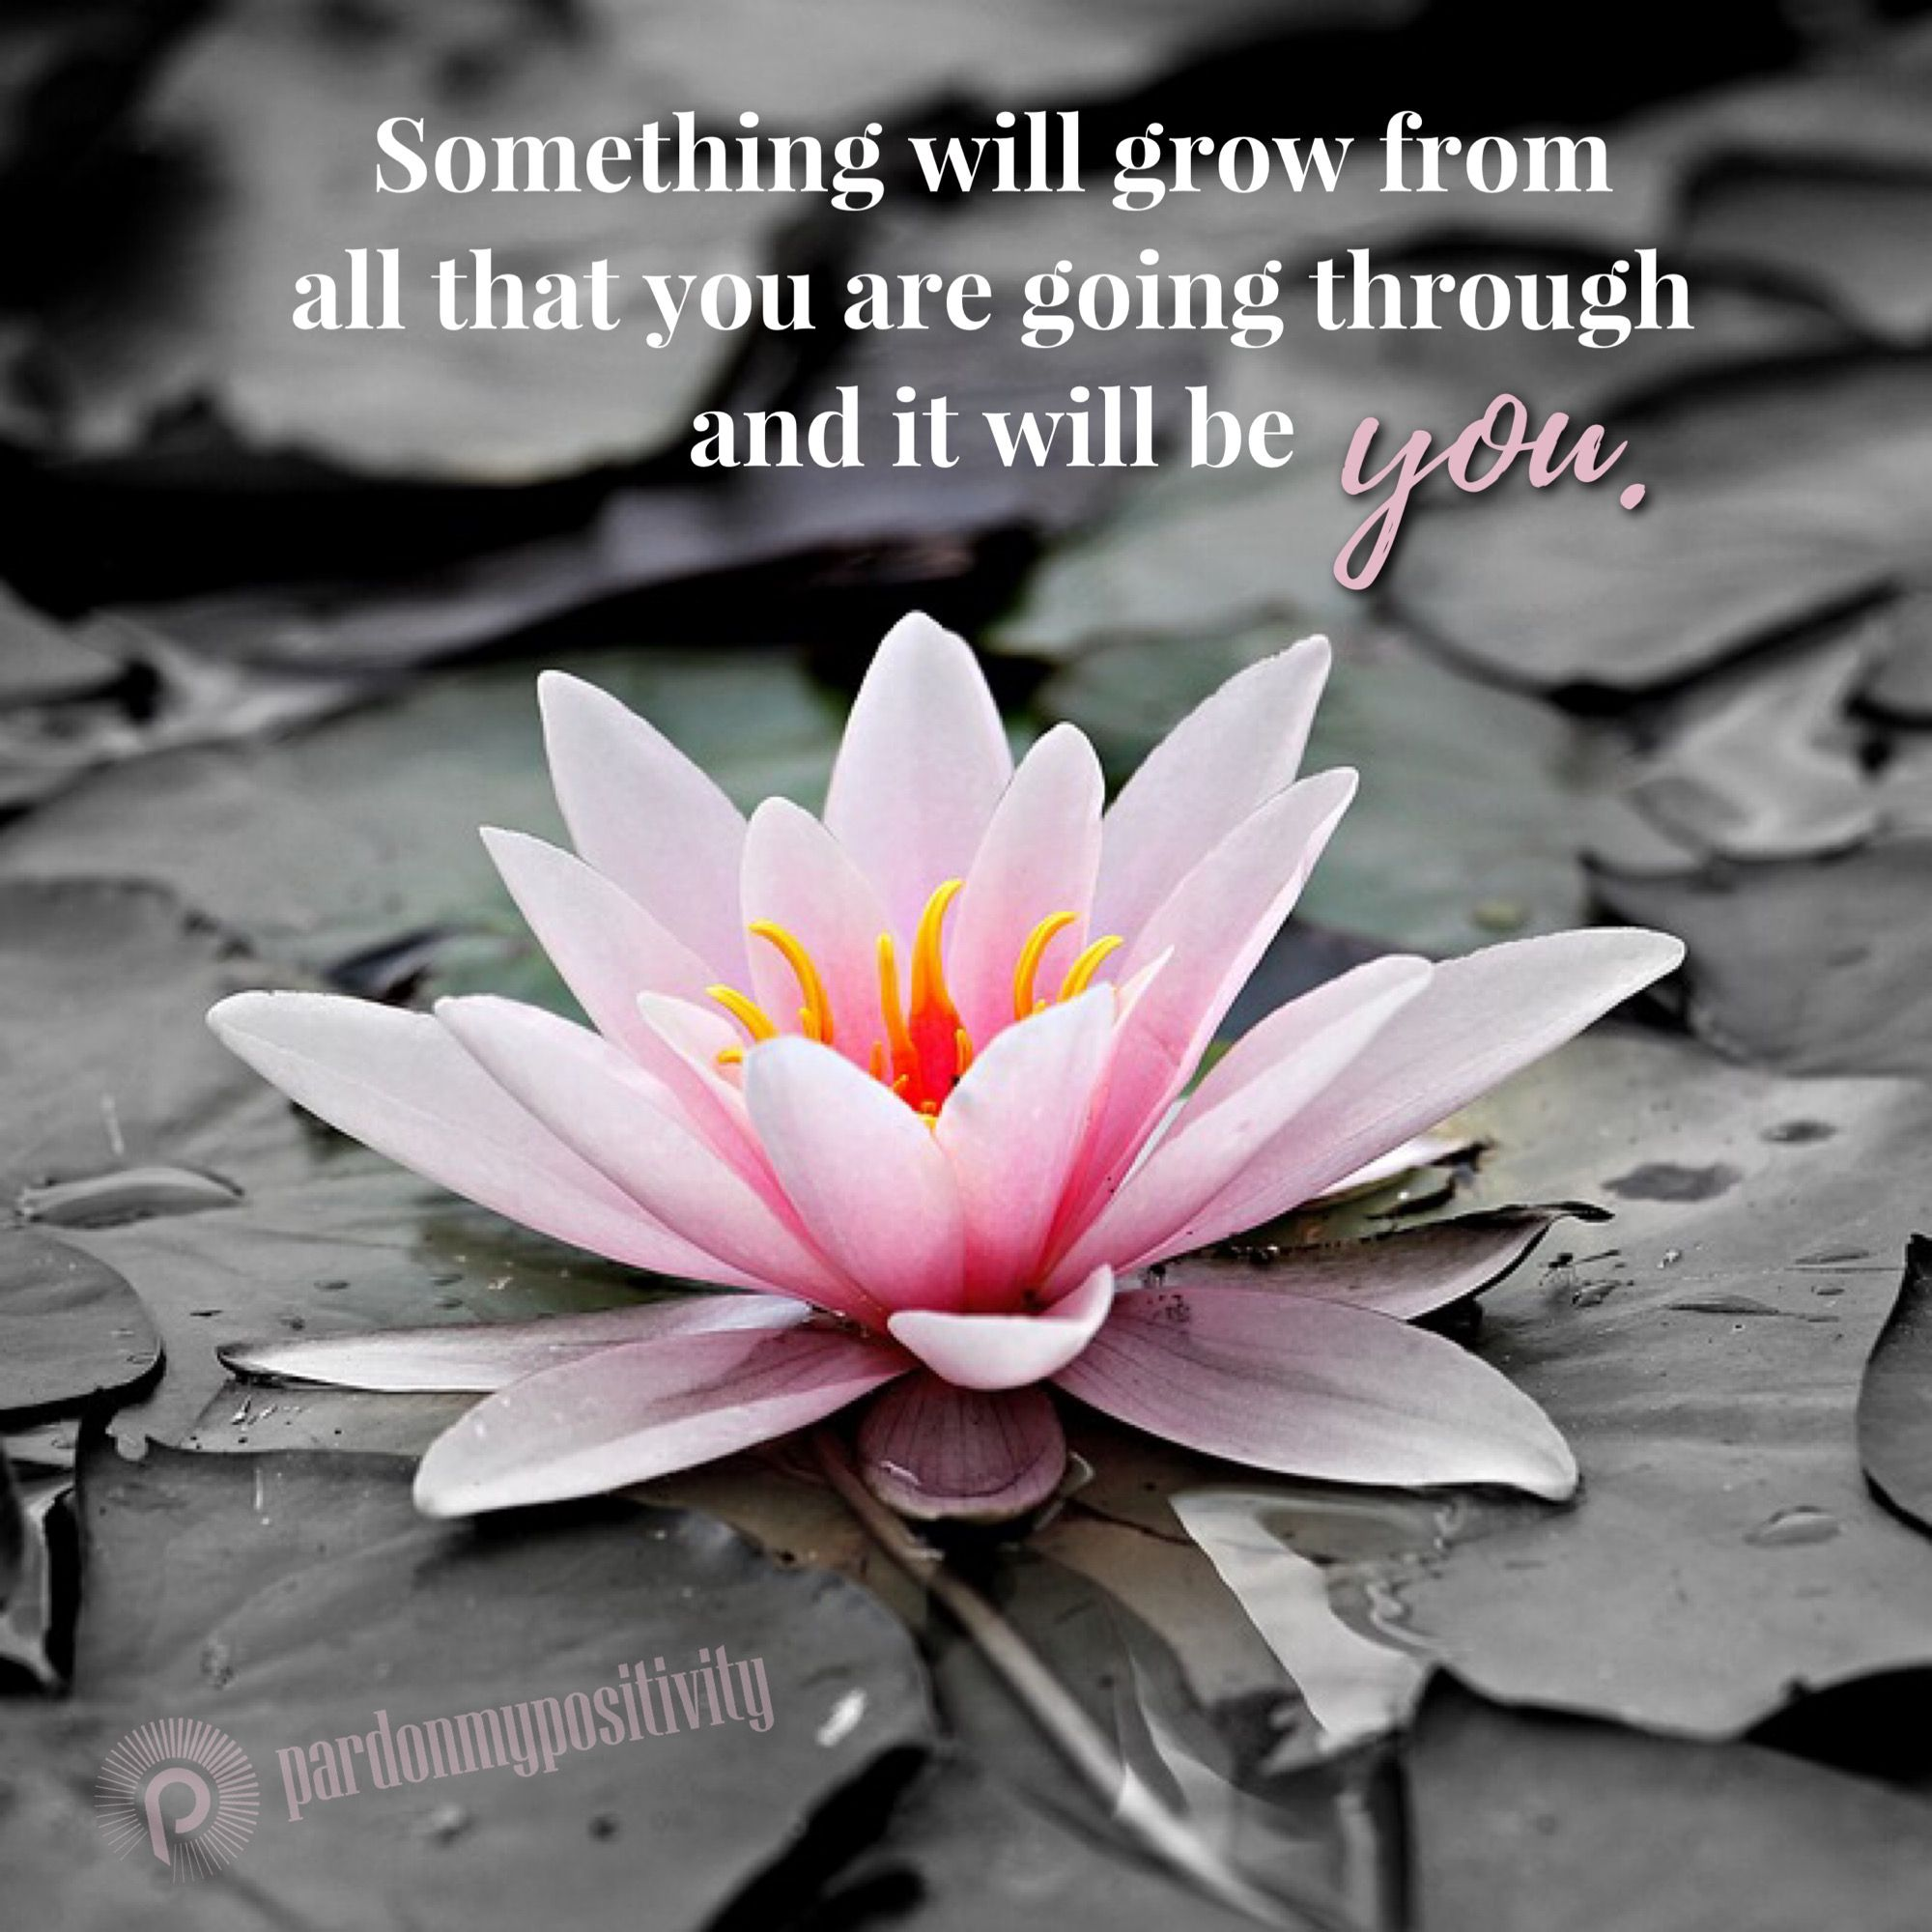 Something will grow from all that you are going through